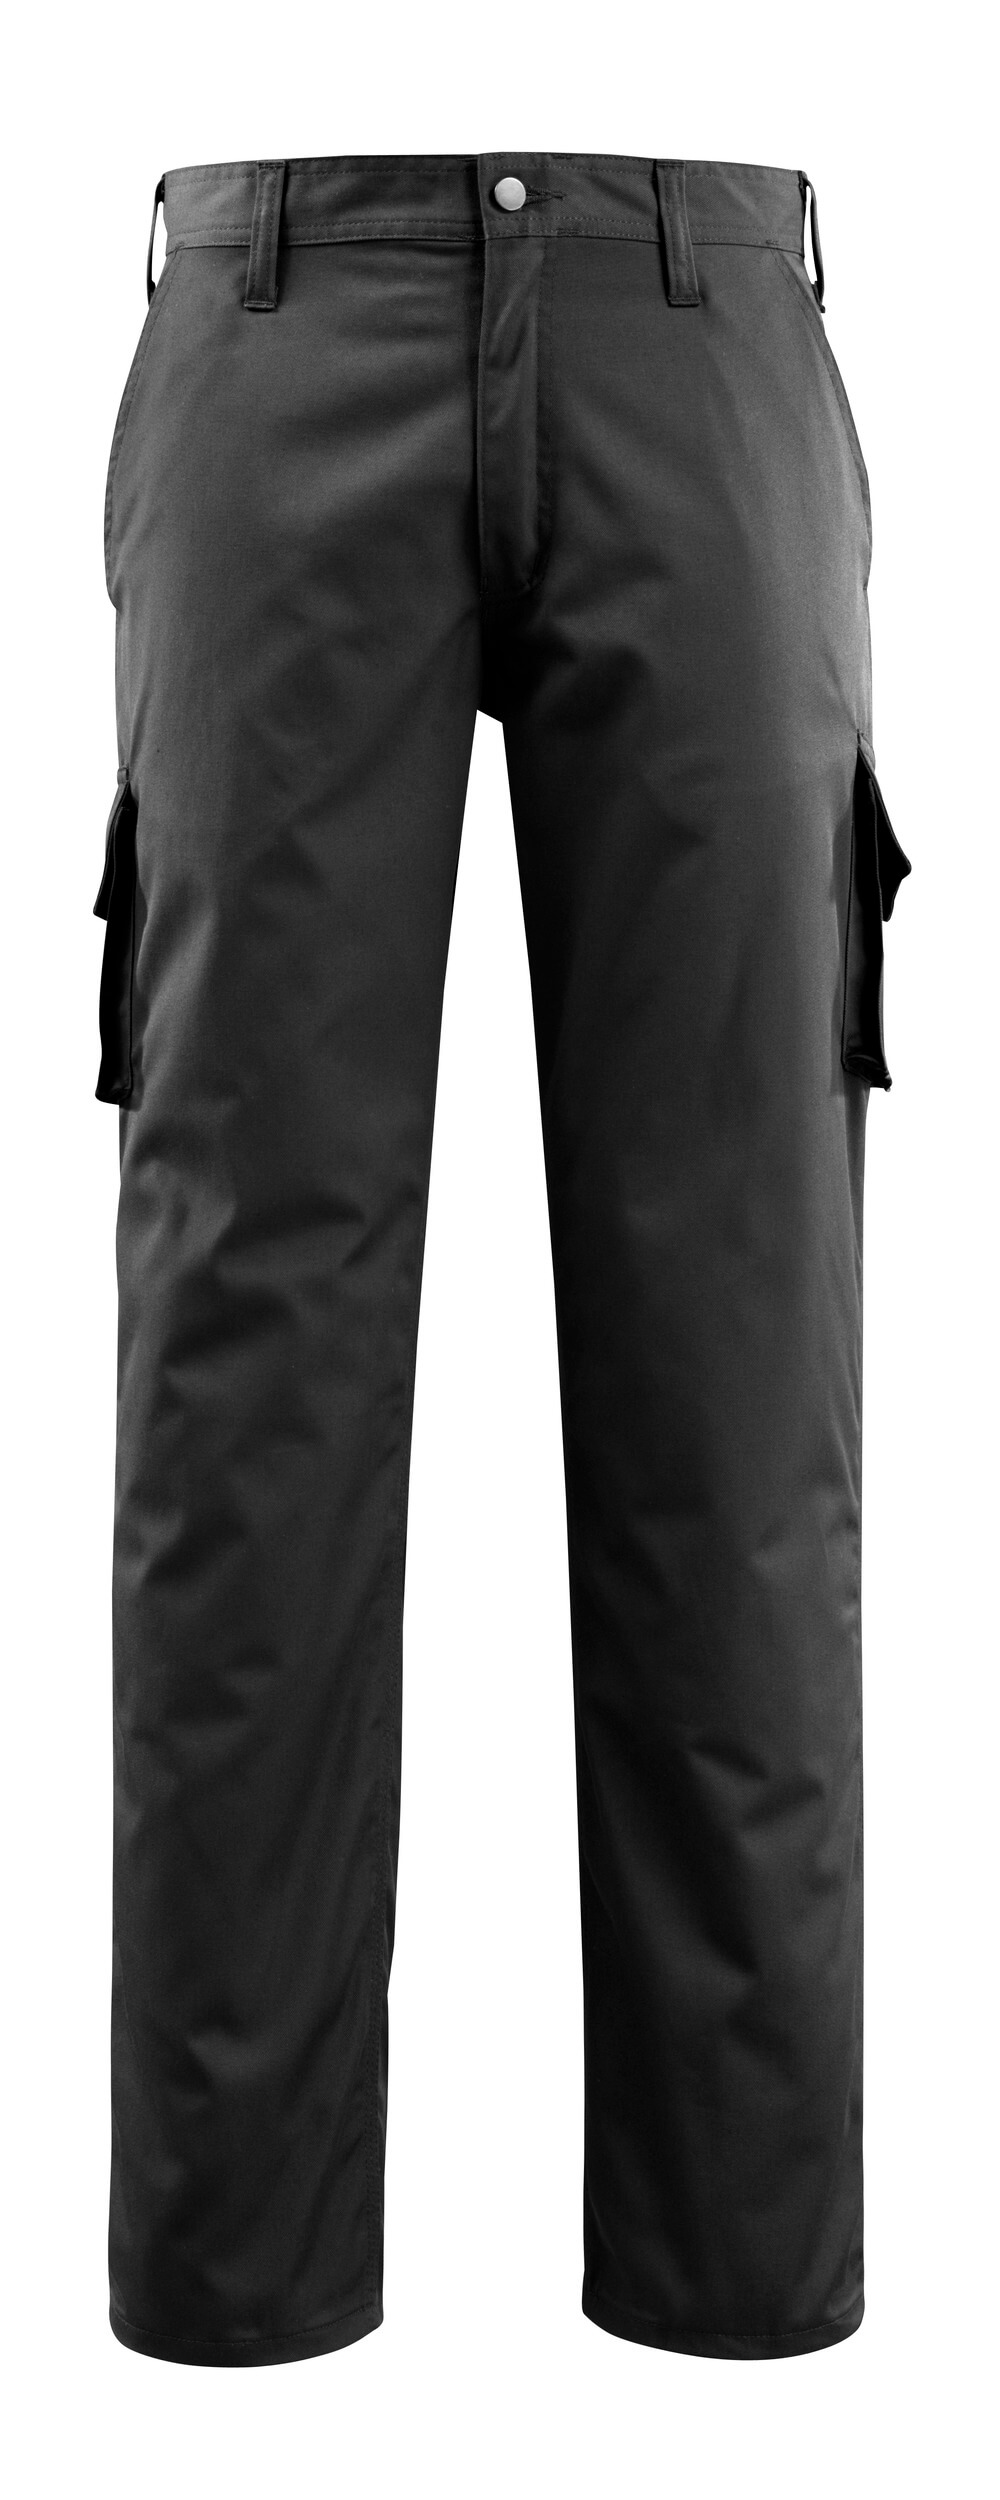 14779-850-09 Pants with thigh pockets - black